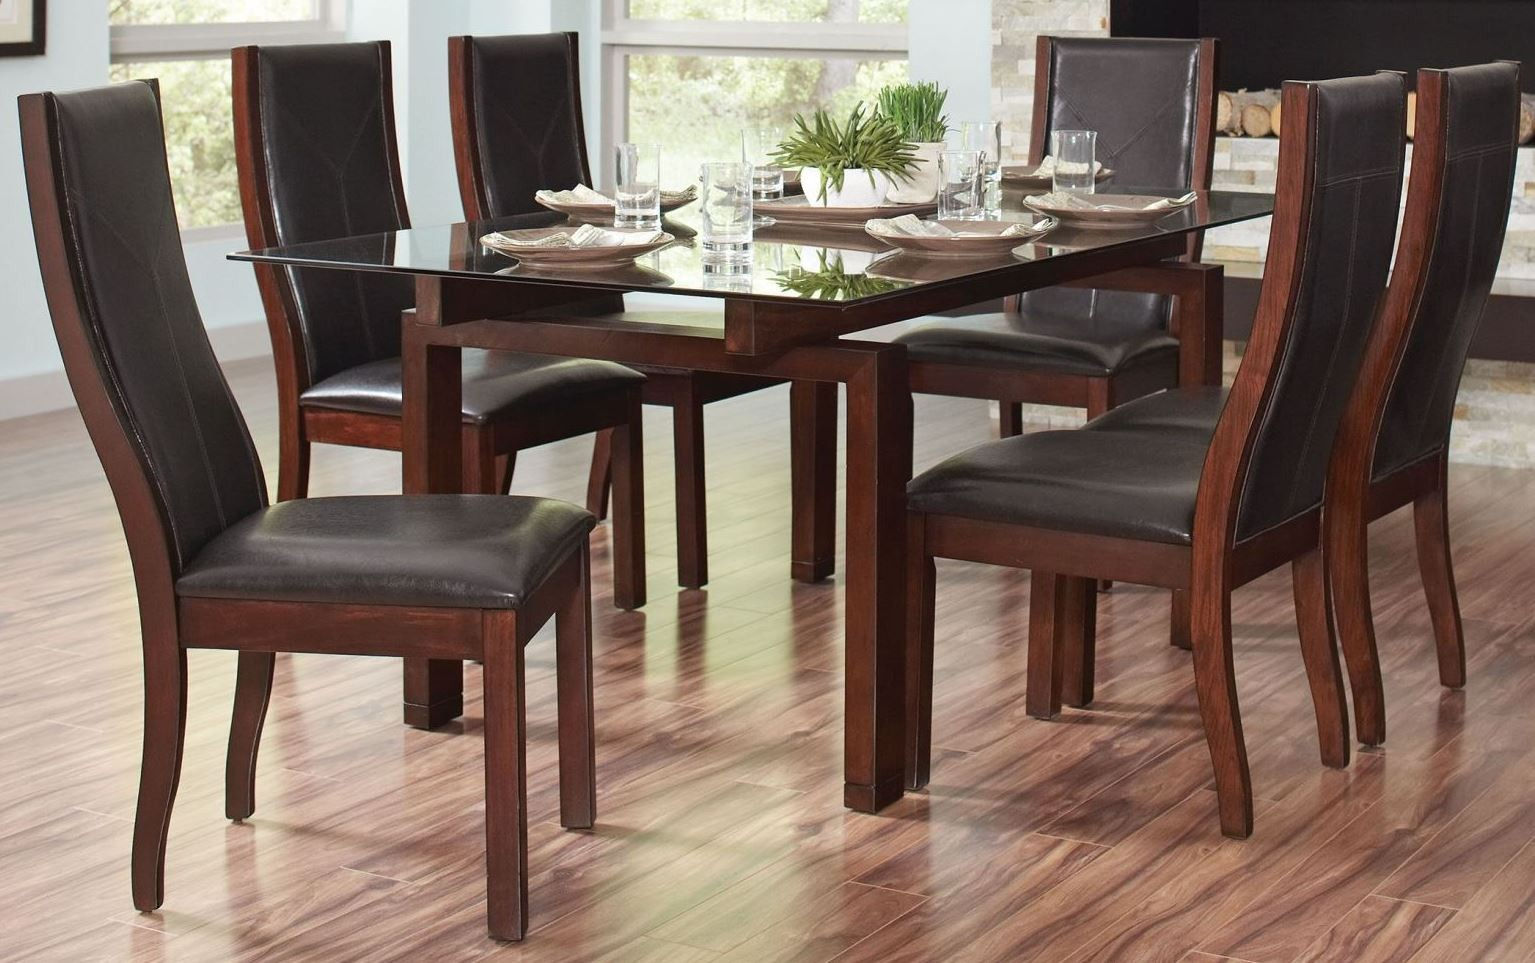 rossine red brown rectangular dining room set from coaster 106071 room good red dining room chairs full sets new trends red dining room